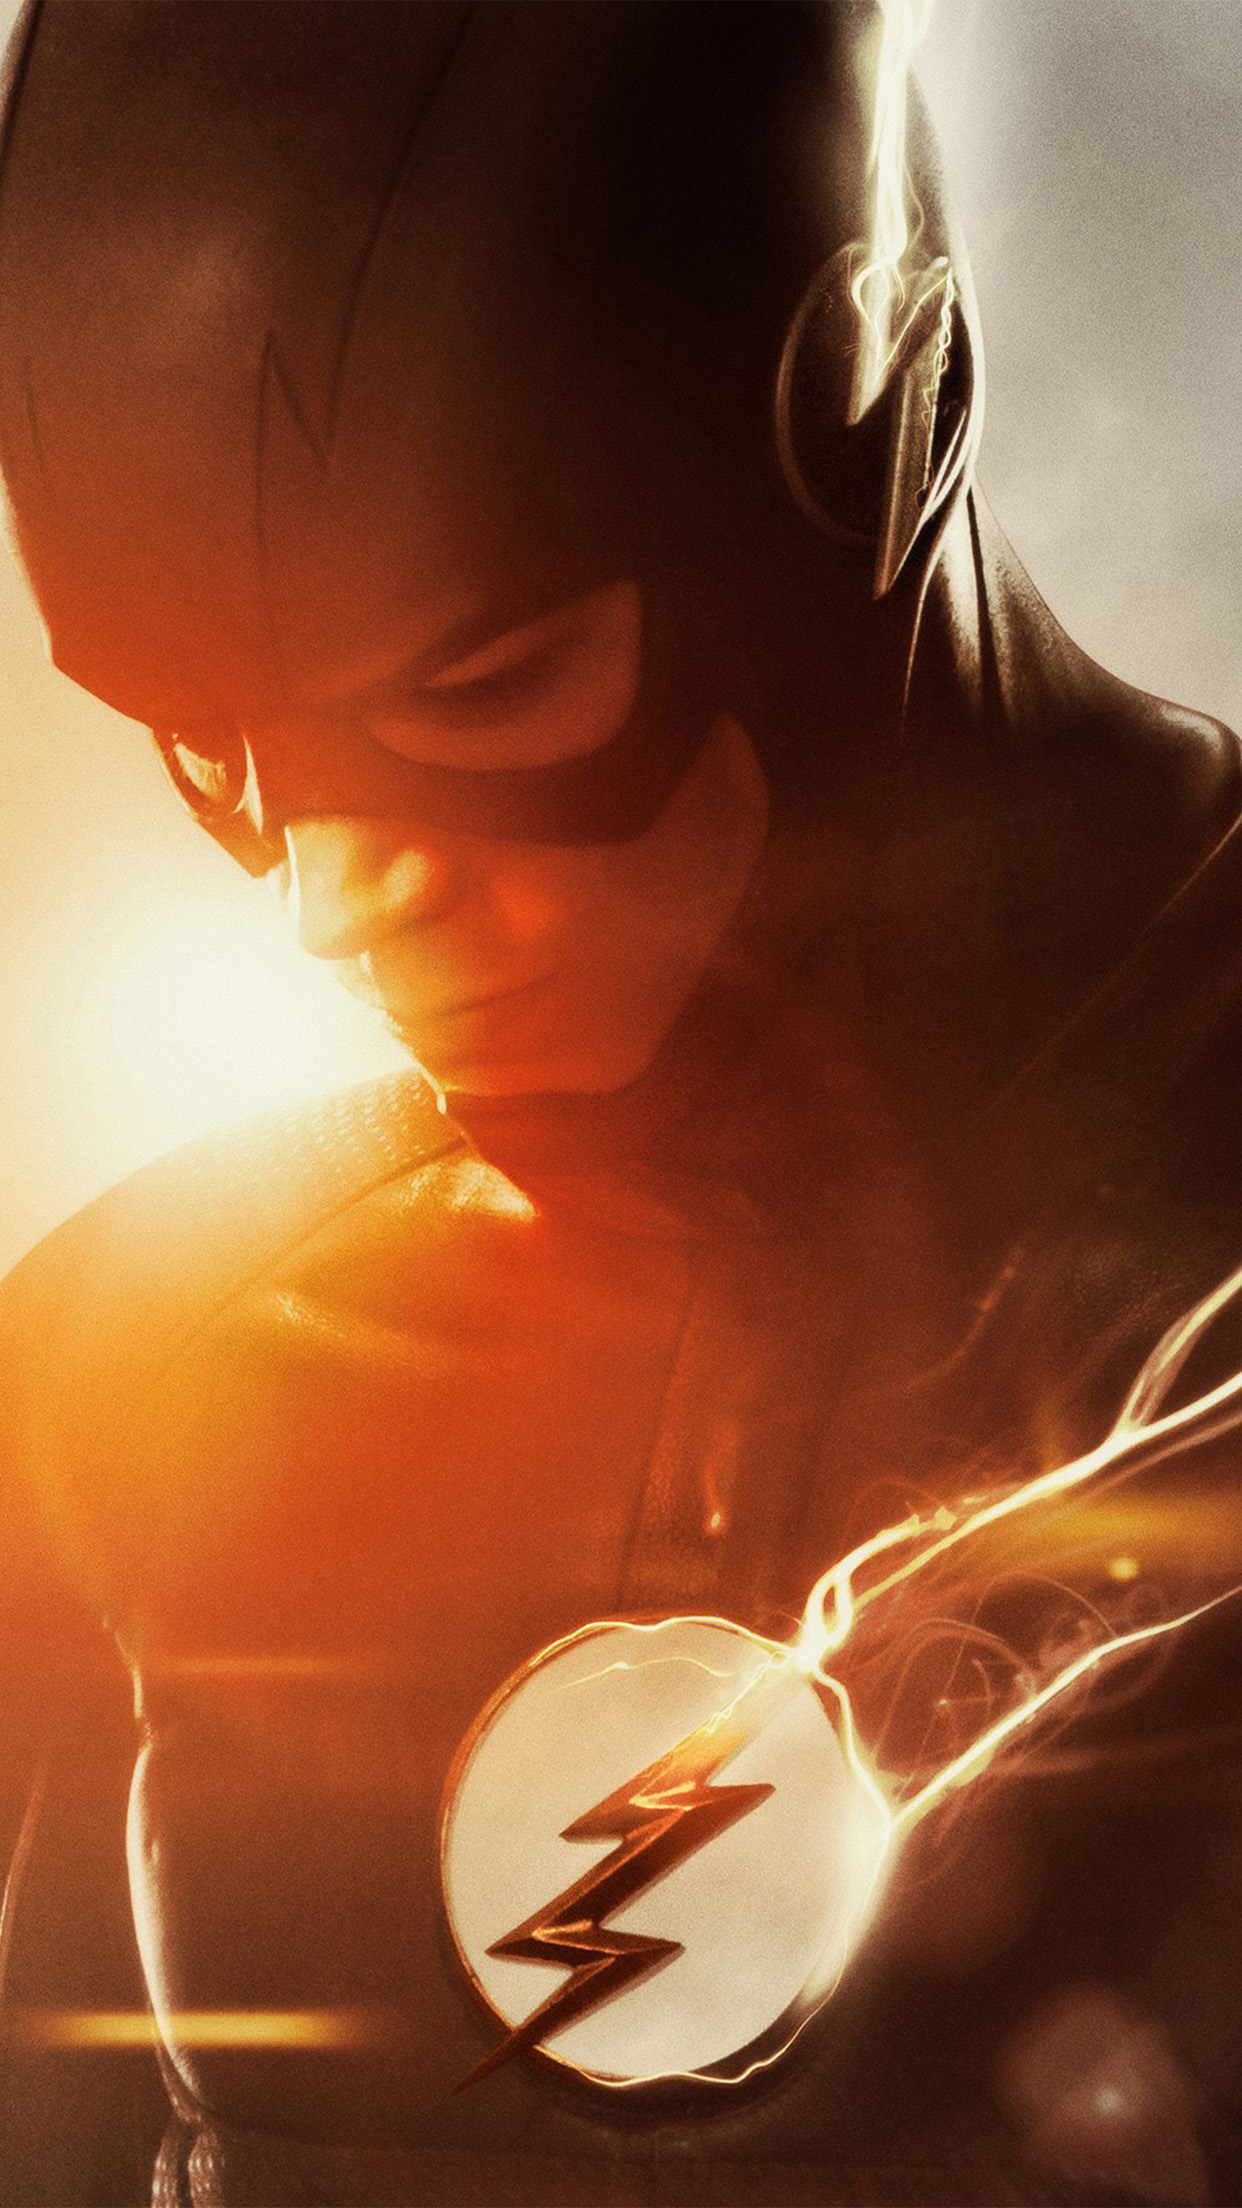 iphonepapers - ao01-the-flash-tv-series-hero-film-art